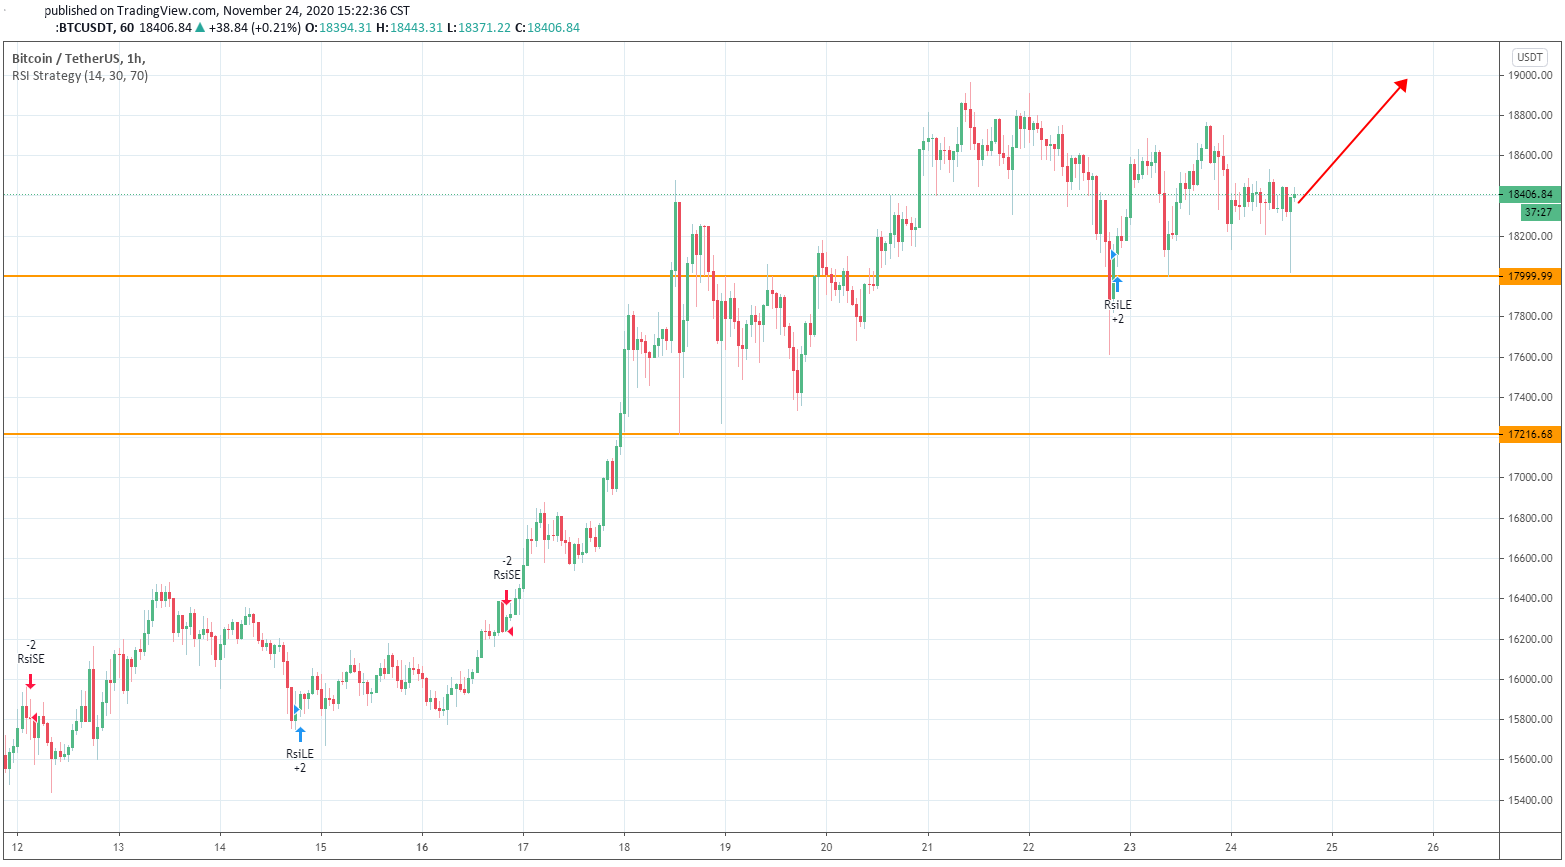 Bitcoin's Price Swings yet the Options Market Remains Optimistic about the Bull Run